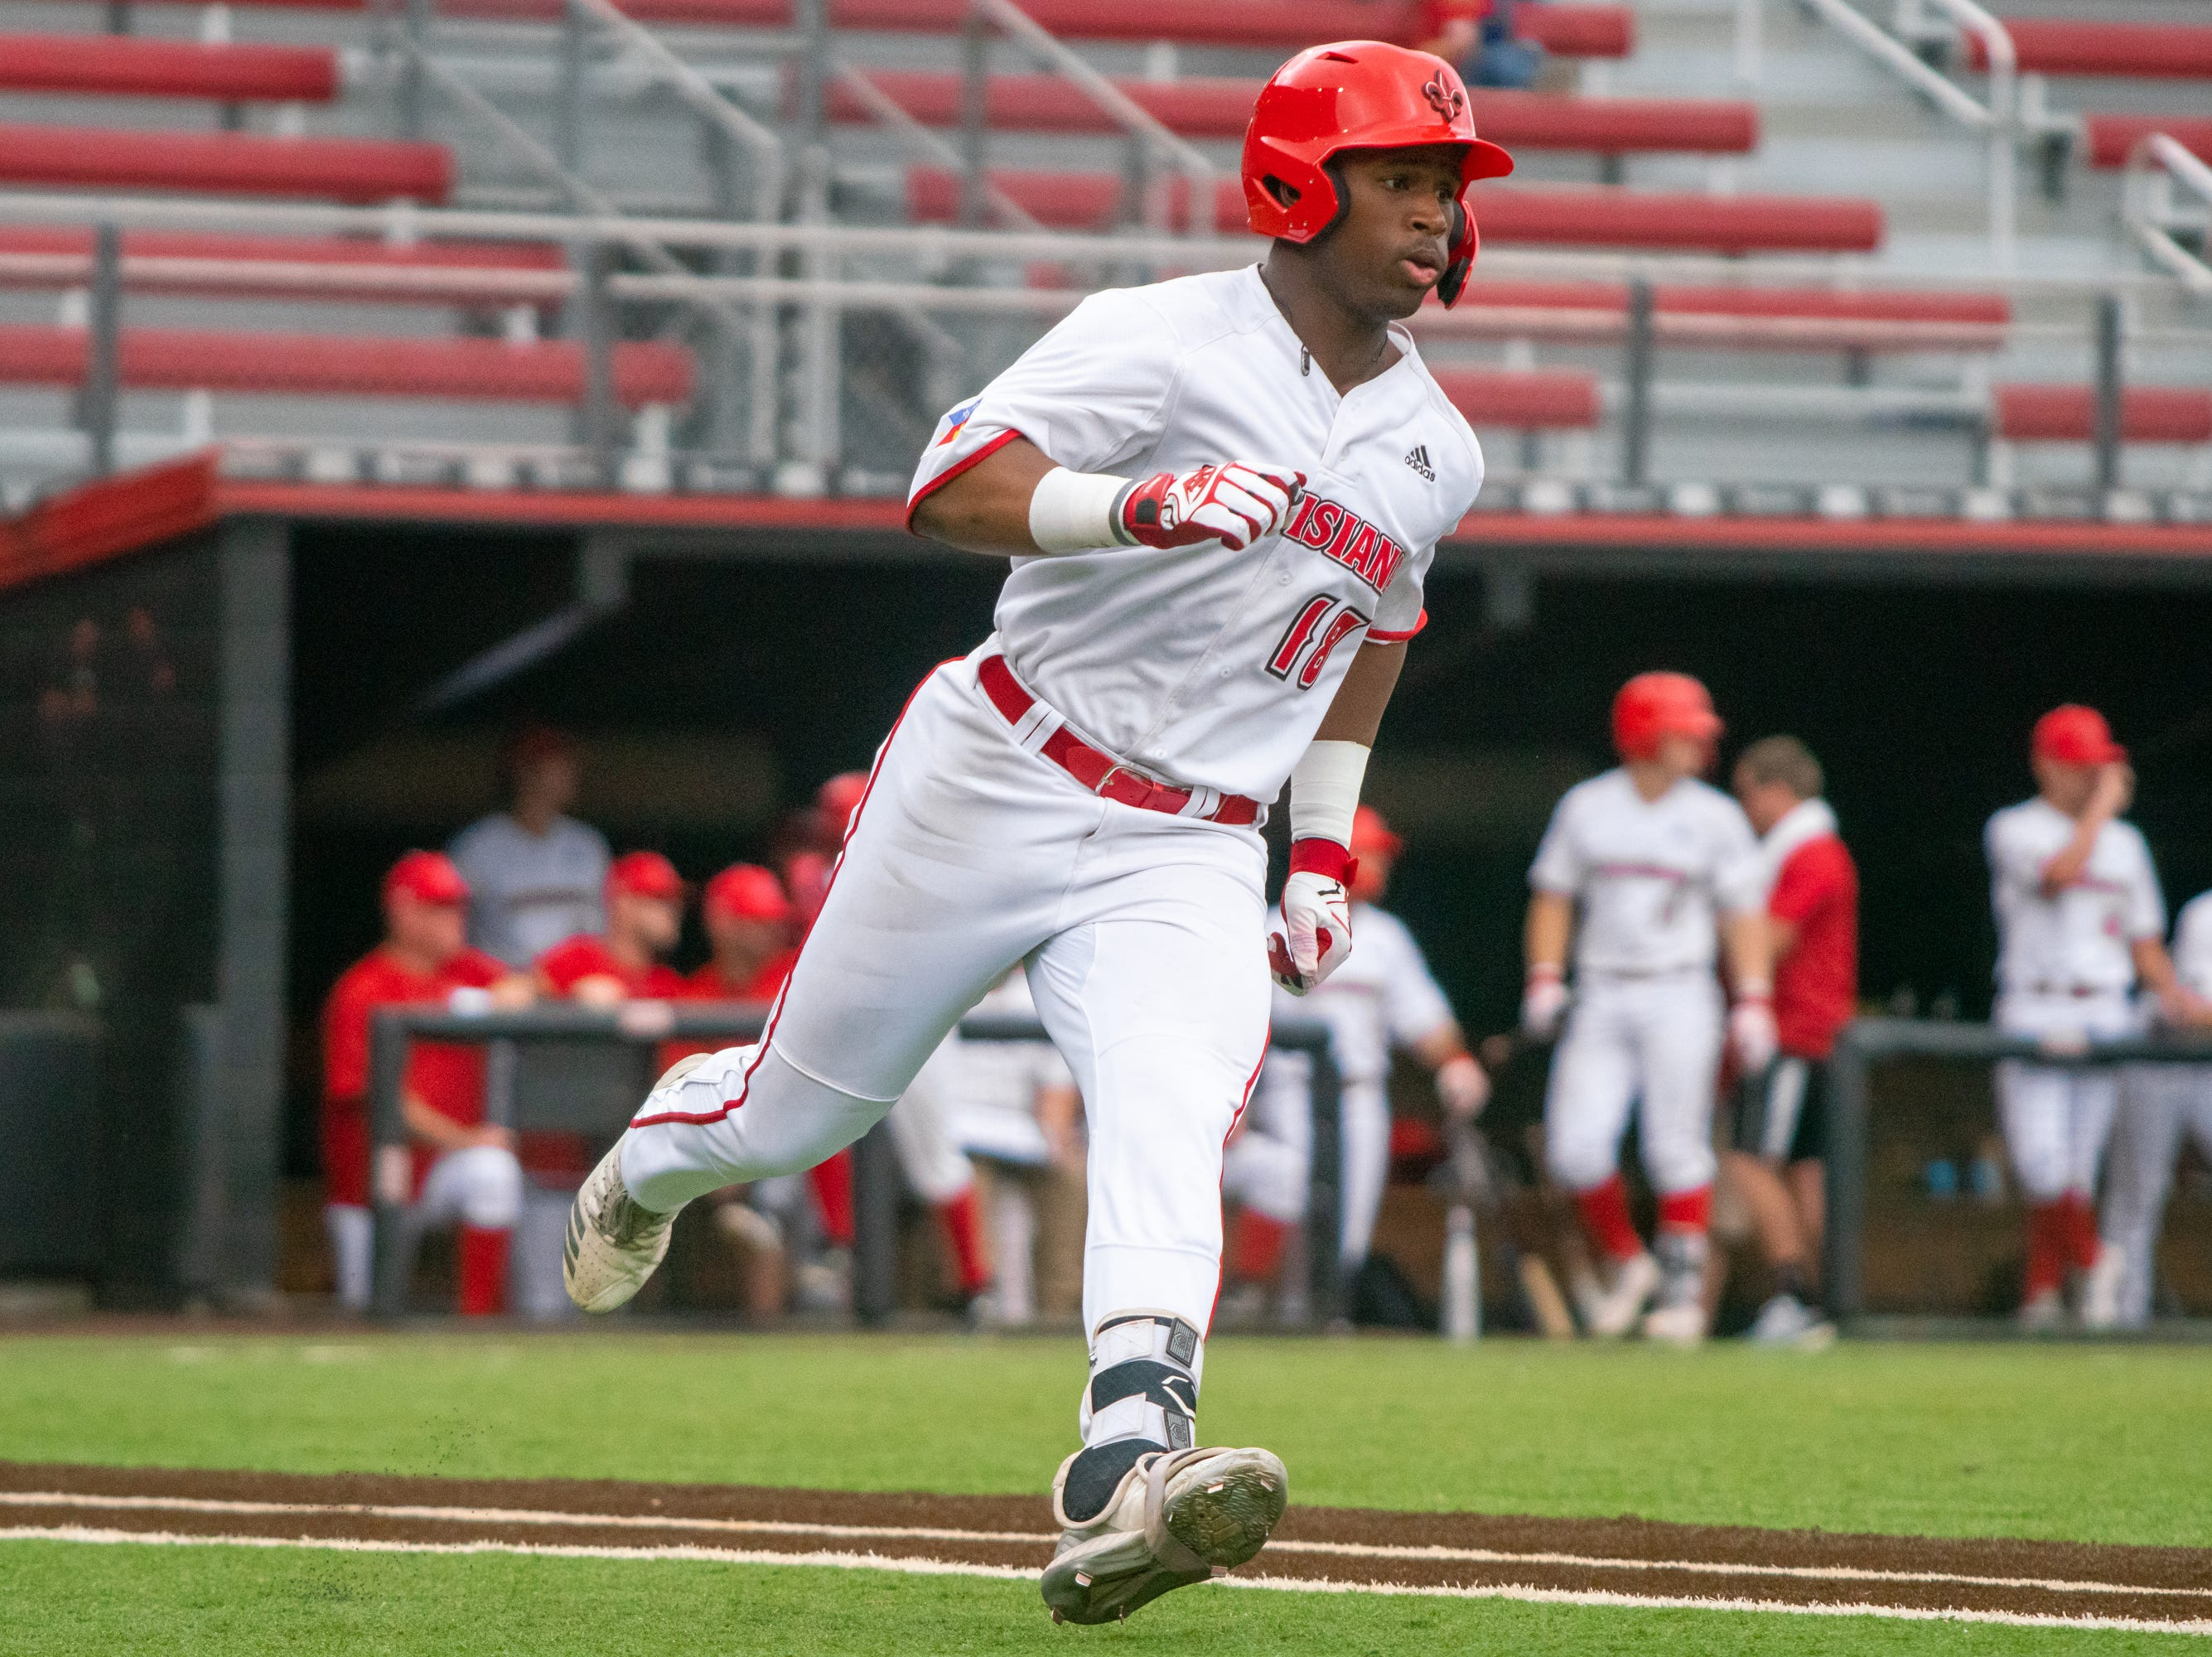 """UL's Tremaine Spears runs to first base as the Ragin' Cajuns take on the South Alabama Jaguars at M.L. """"Tigue"""" Moore Field on Saturday, April 13, 2019."""